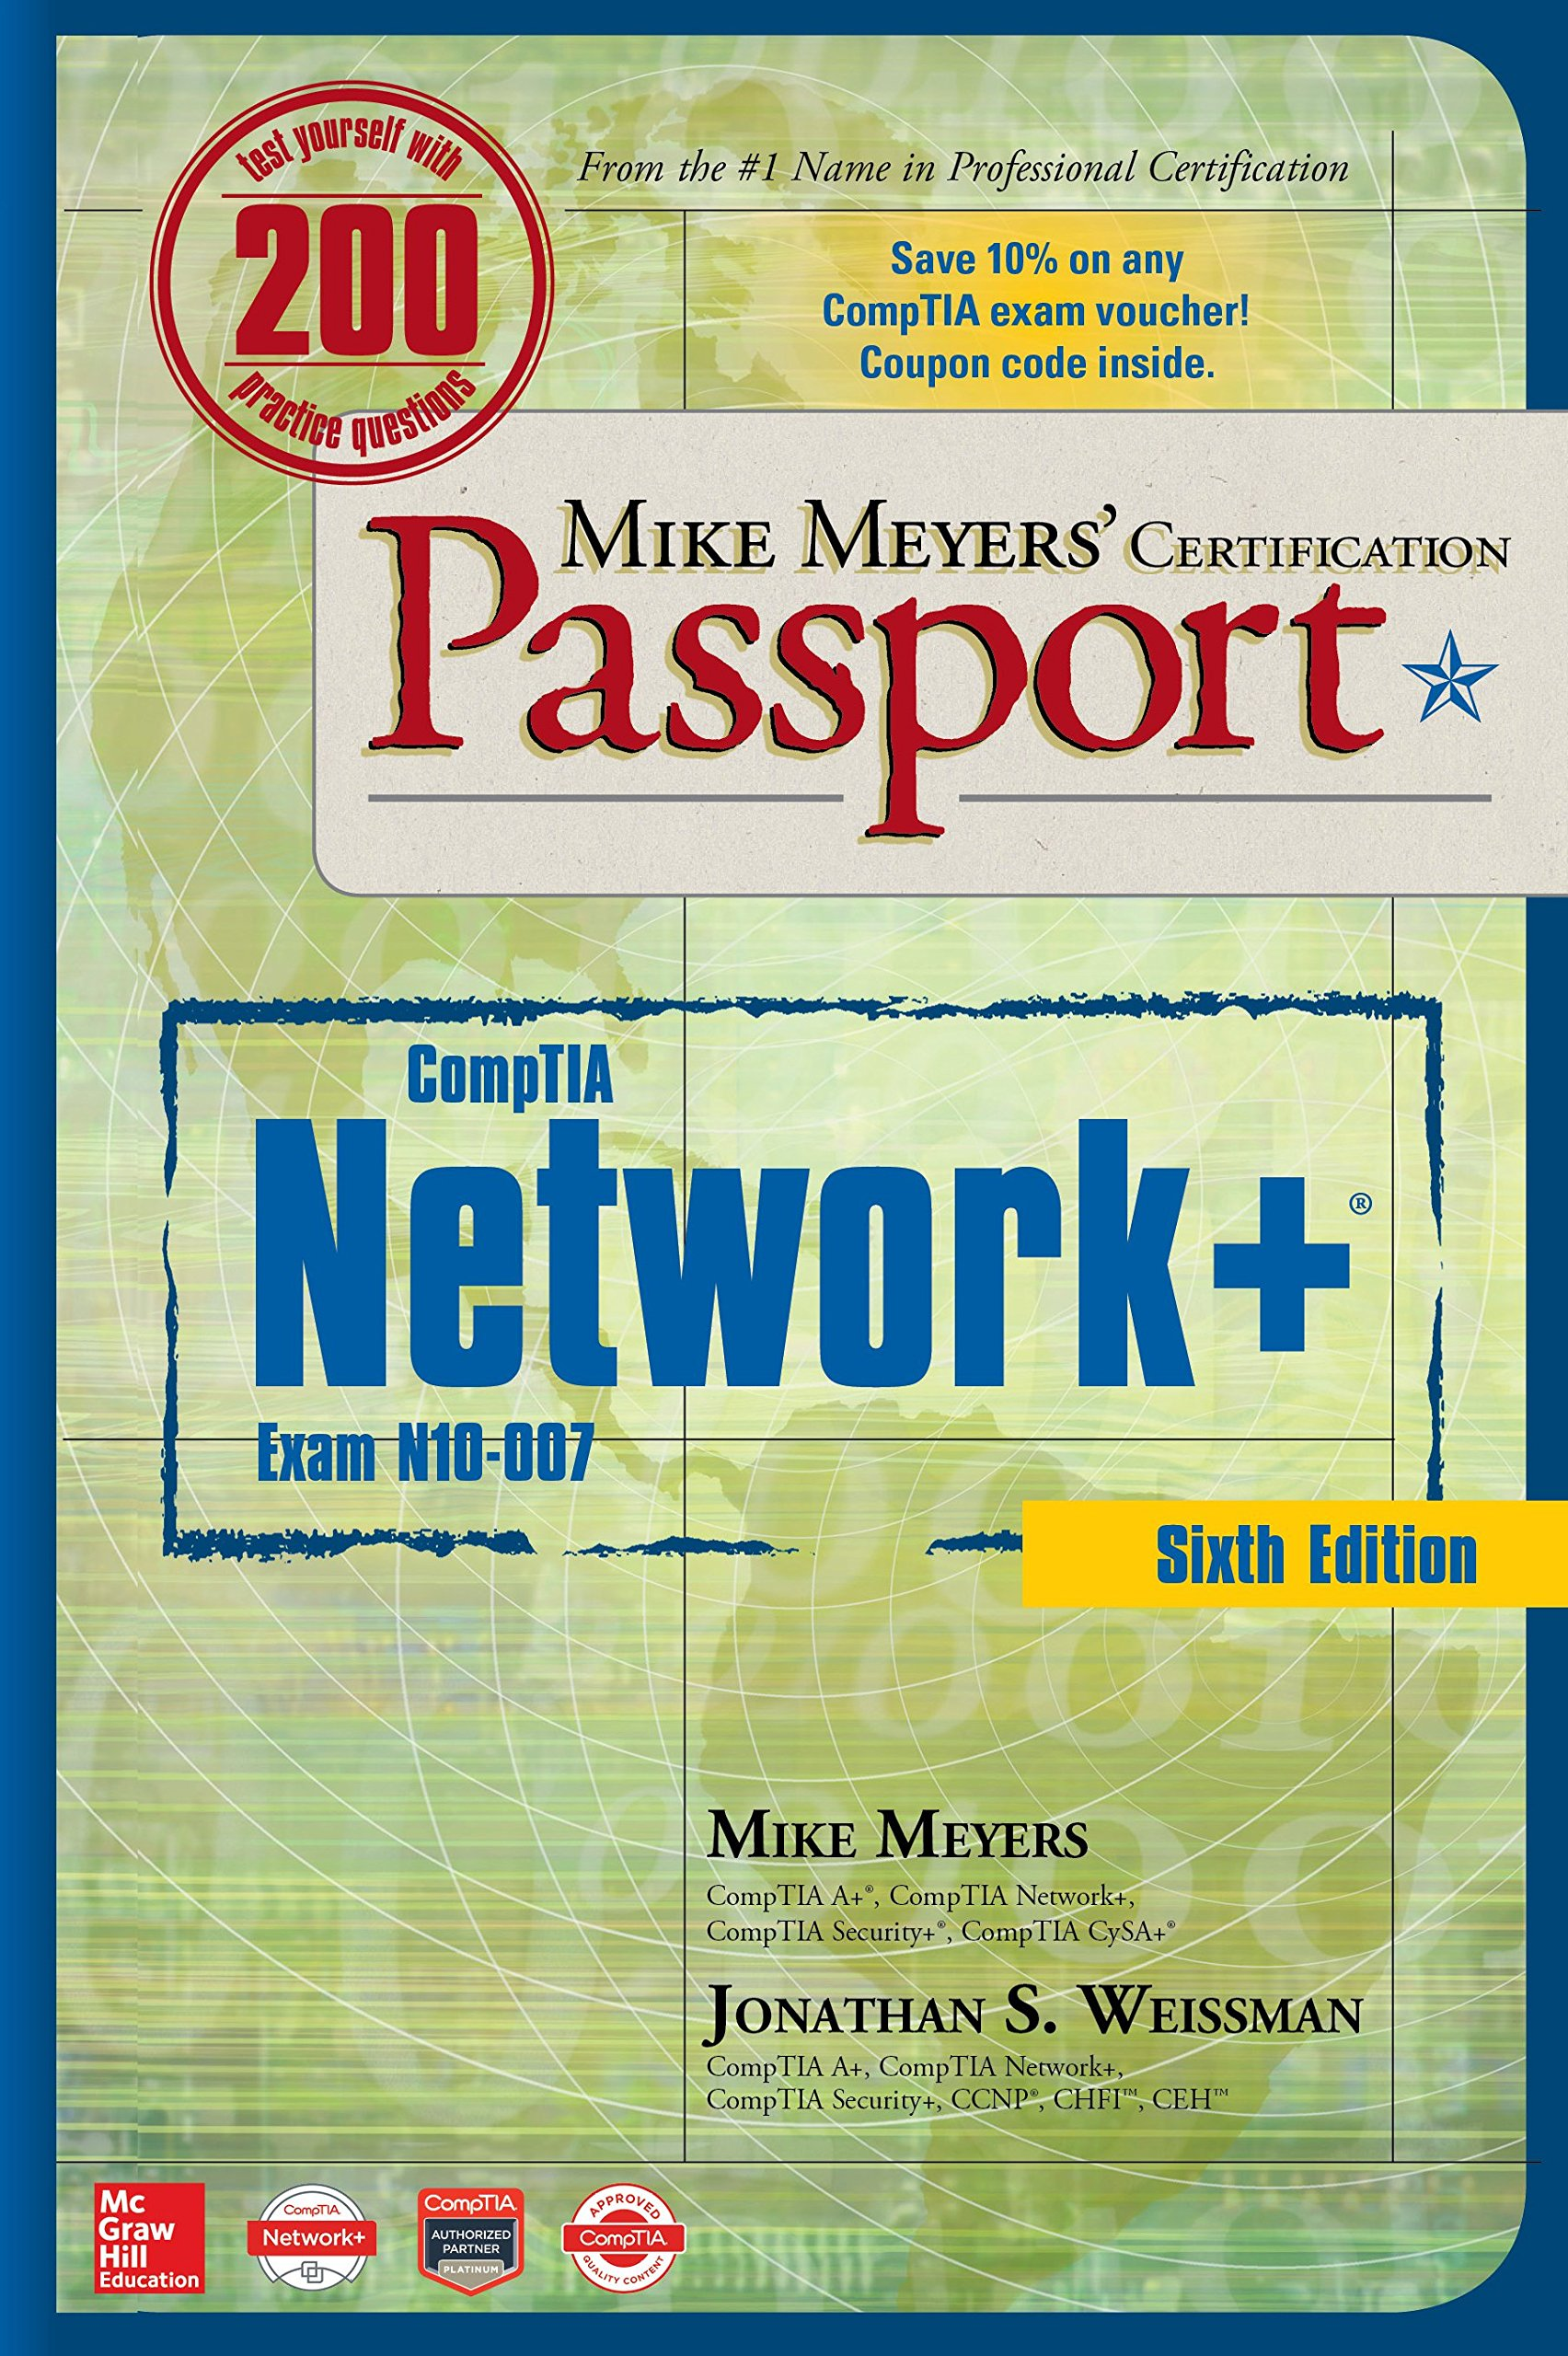 Mike Meyers CompTIA Network+ Certification Passport, Sixth Edition Exam N10-007 Mike Meyers Certification Passport: Amazon.es: Mike Meyers, ...